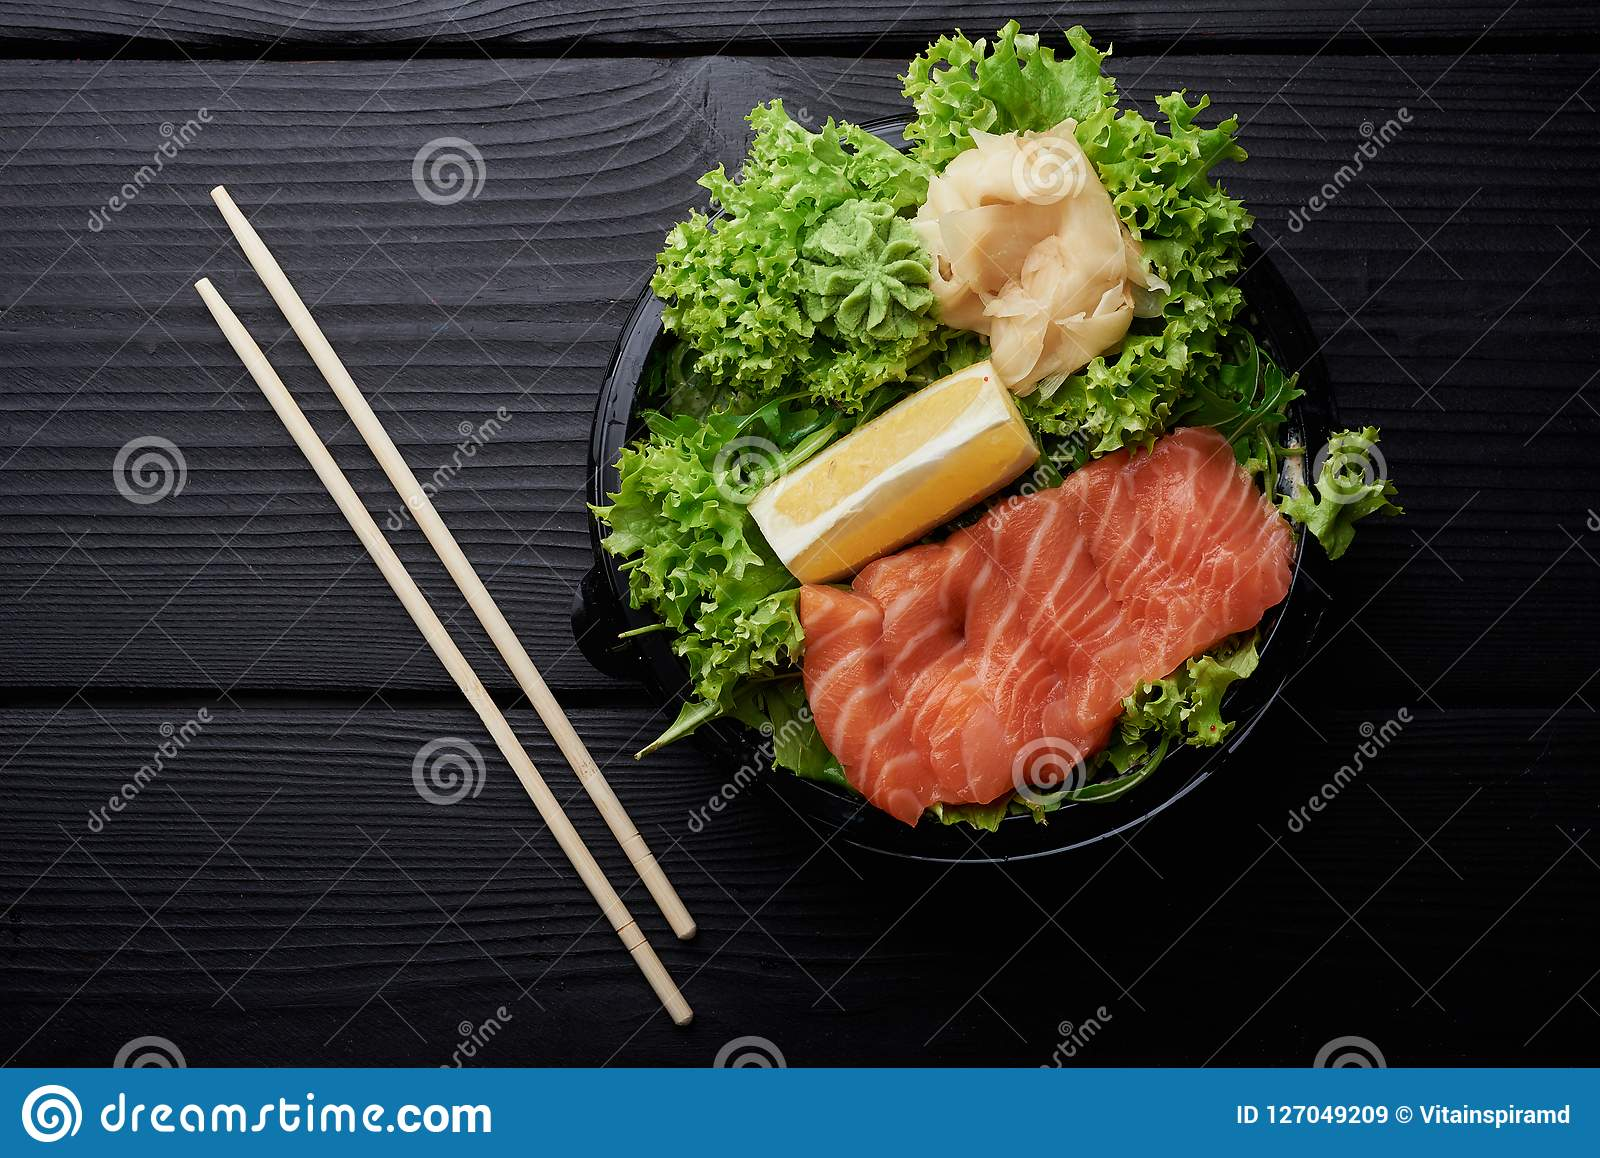 Raw Sliced Salmon Fillet on Black Stone Background. Thick Pieces of Fresh Trout. Red Fish Sashimi